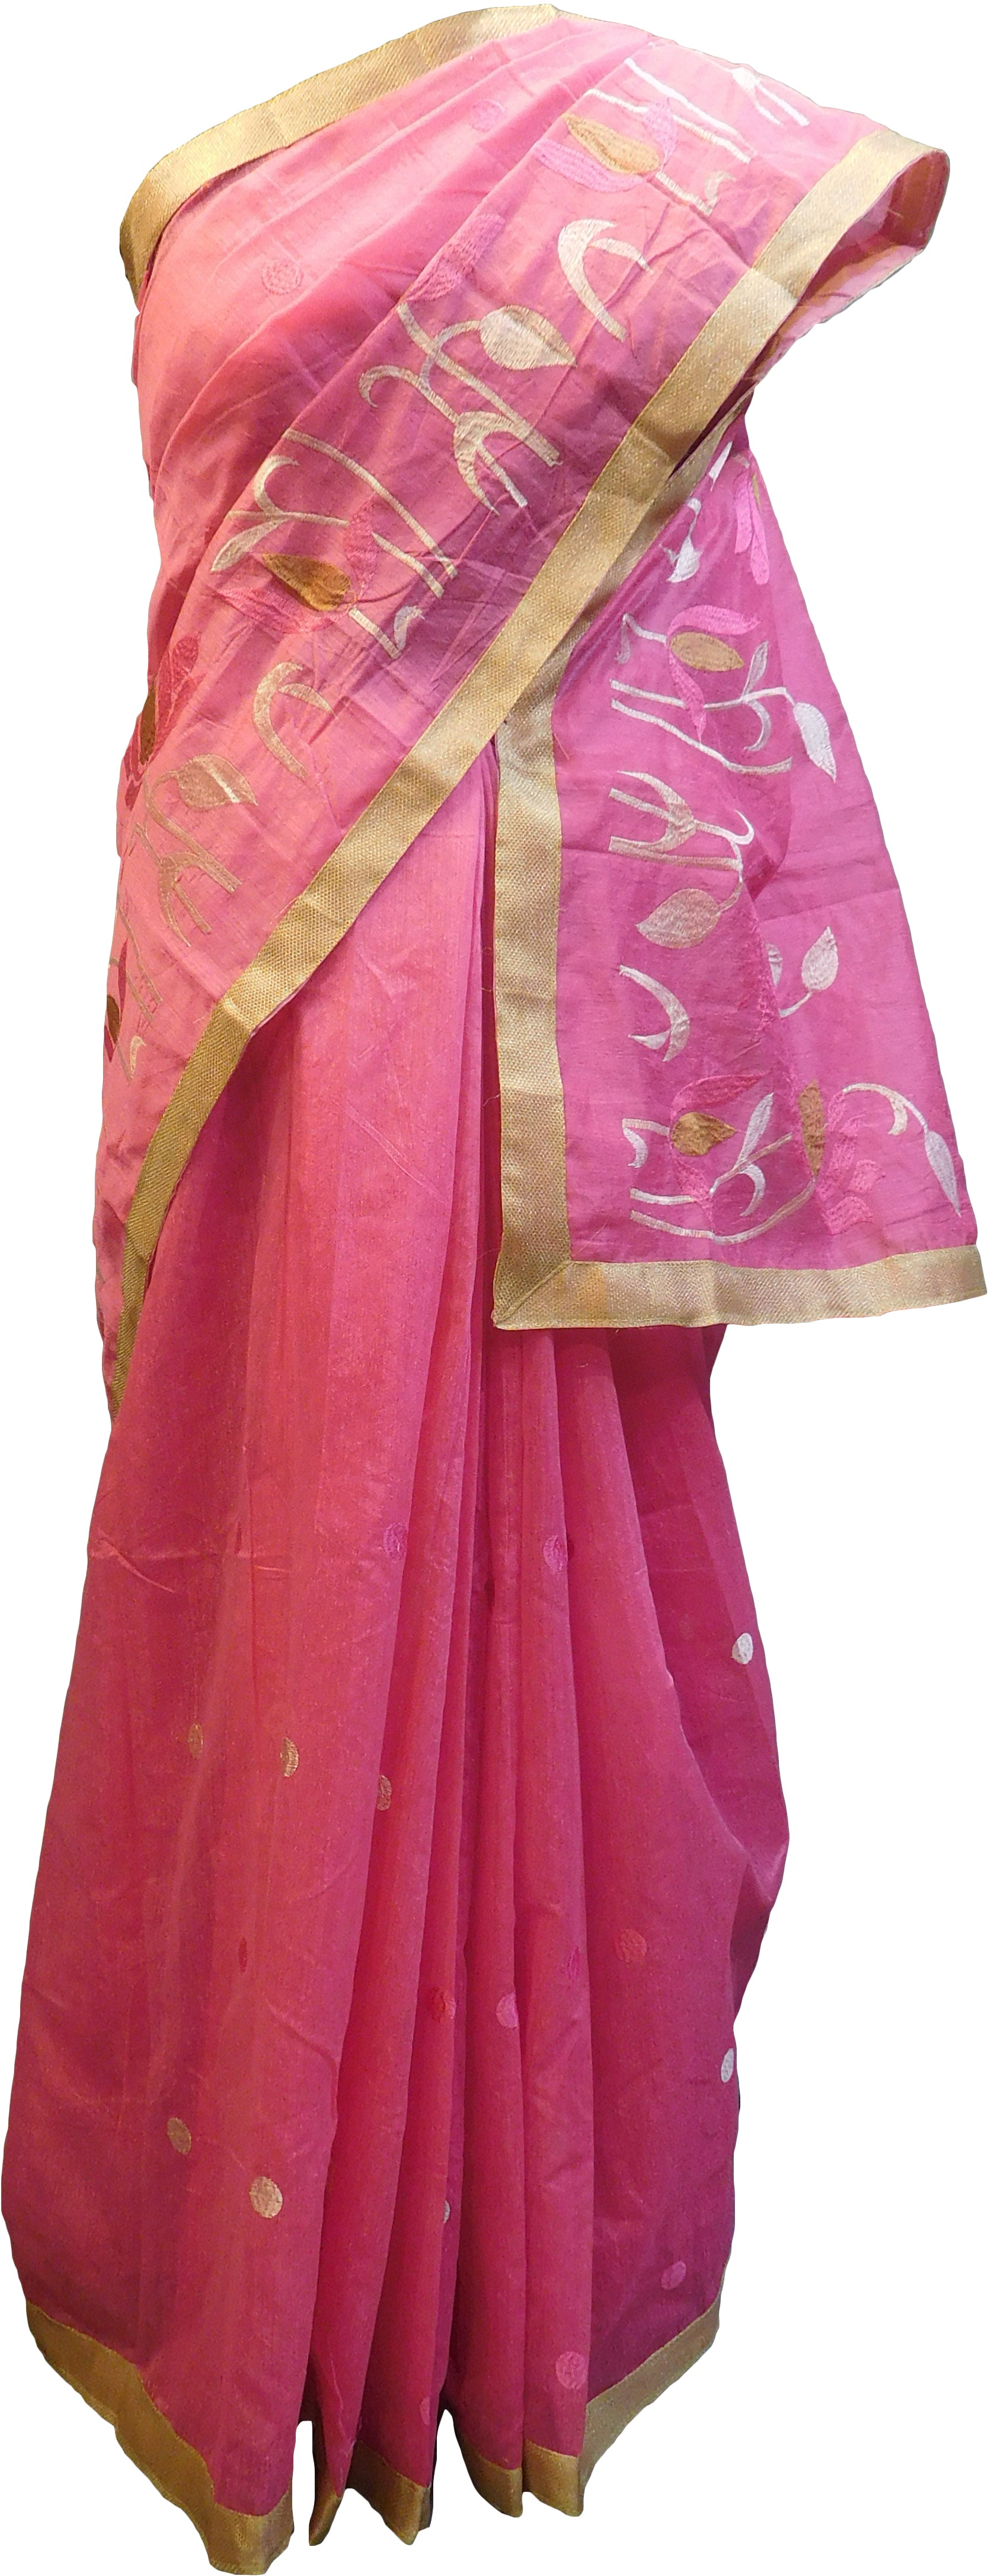 SMSAREE Pink Designer Wedding Partywear Cotton (Chanderi) Thread & Zari Hand Embroidery Work Bridal Saree Sari With Blouse Piece E968